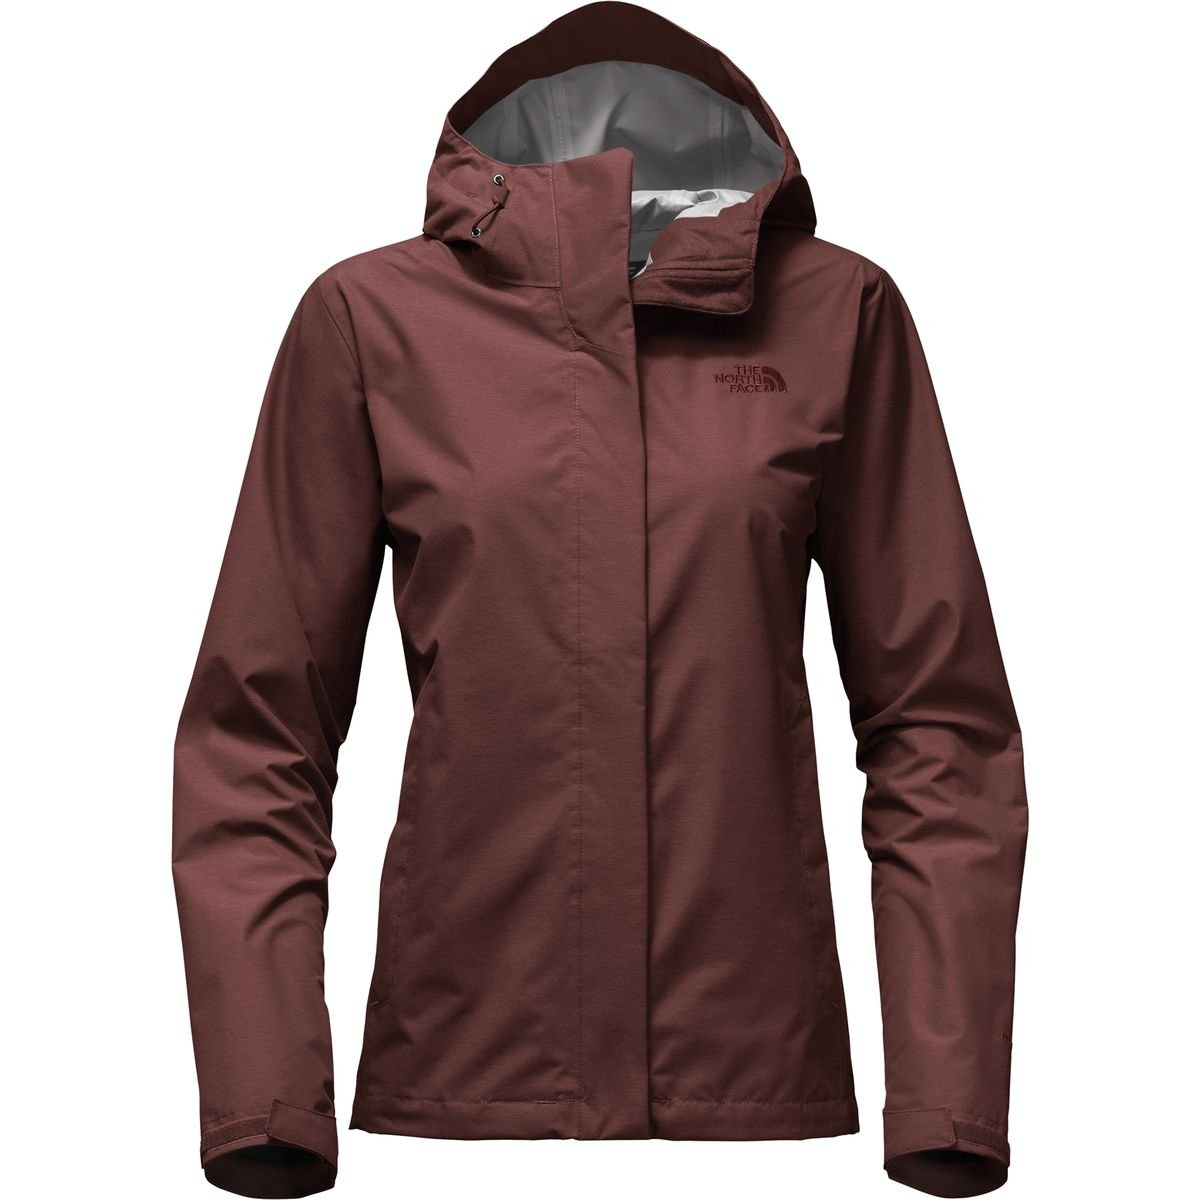 The North Face Women's Venture 2 Jacket - Sequoia Red Heather - XL (Past Season)